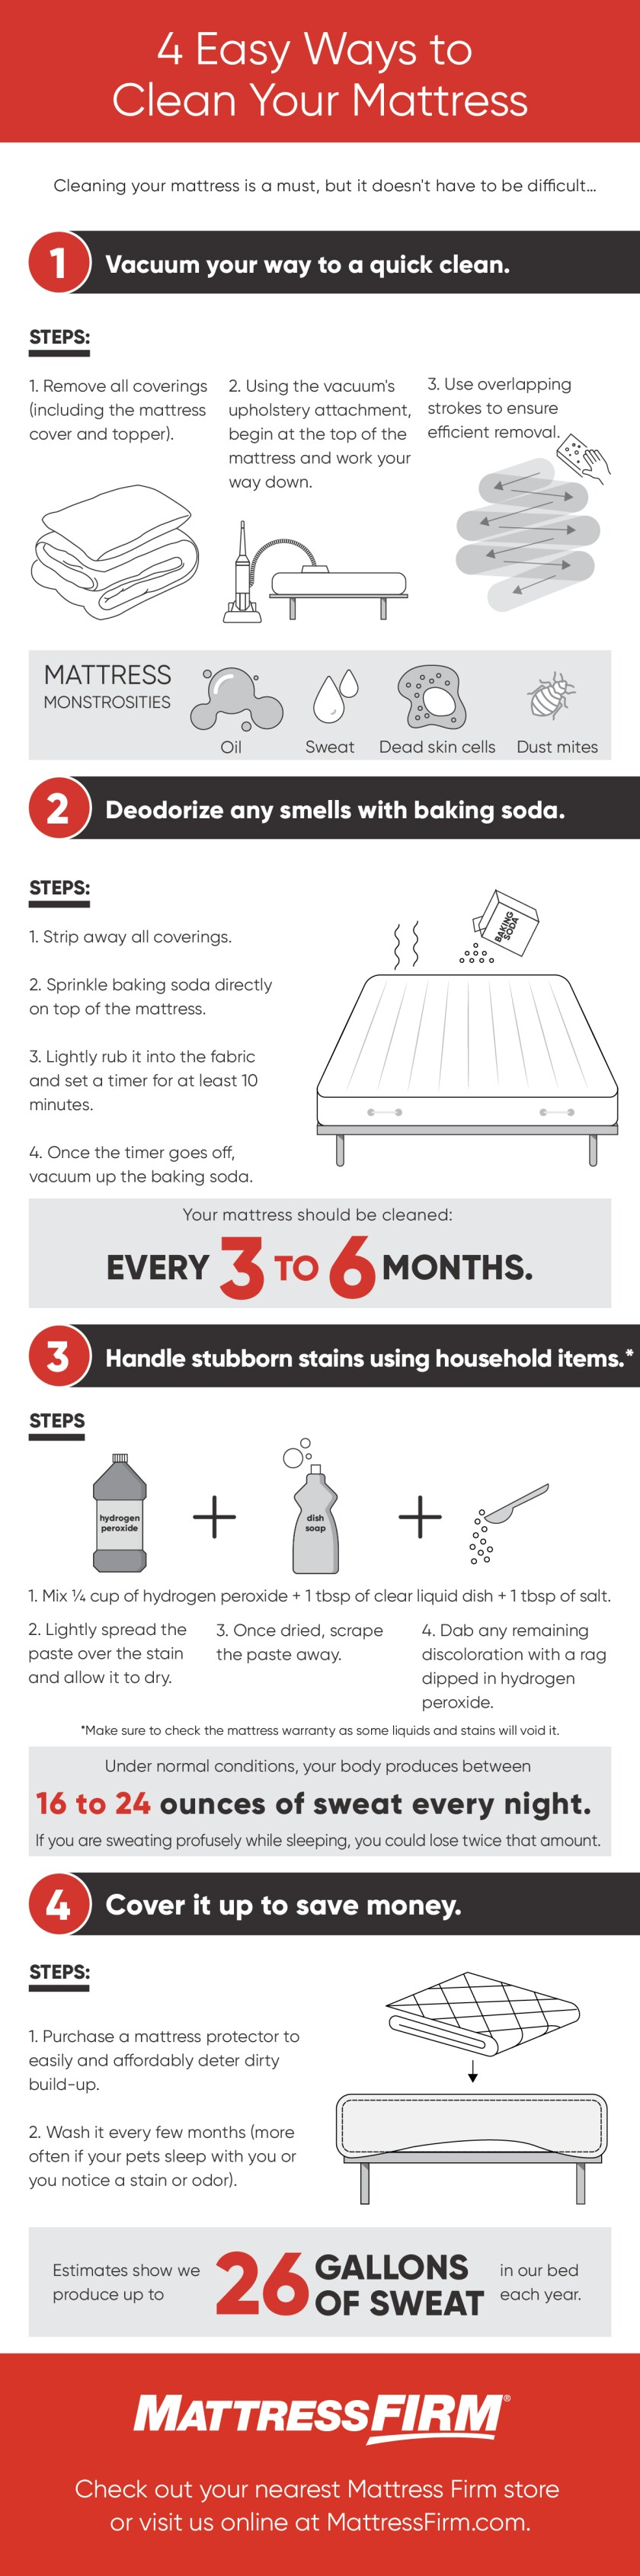 mf-4-ways-to-keep-your-mattress-clean-v3-01.jpg